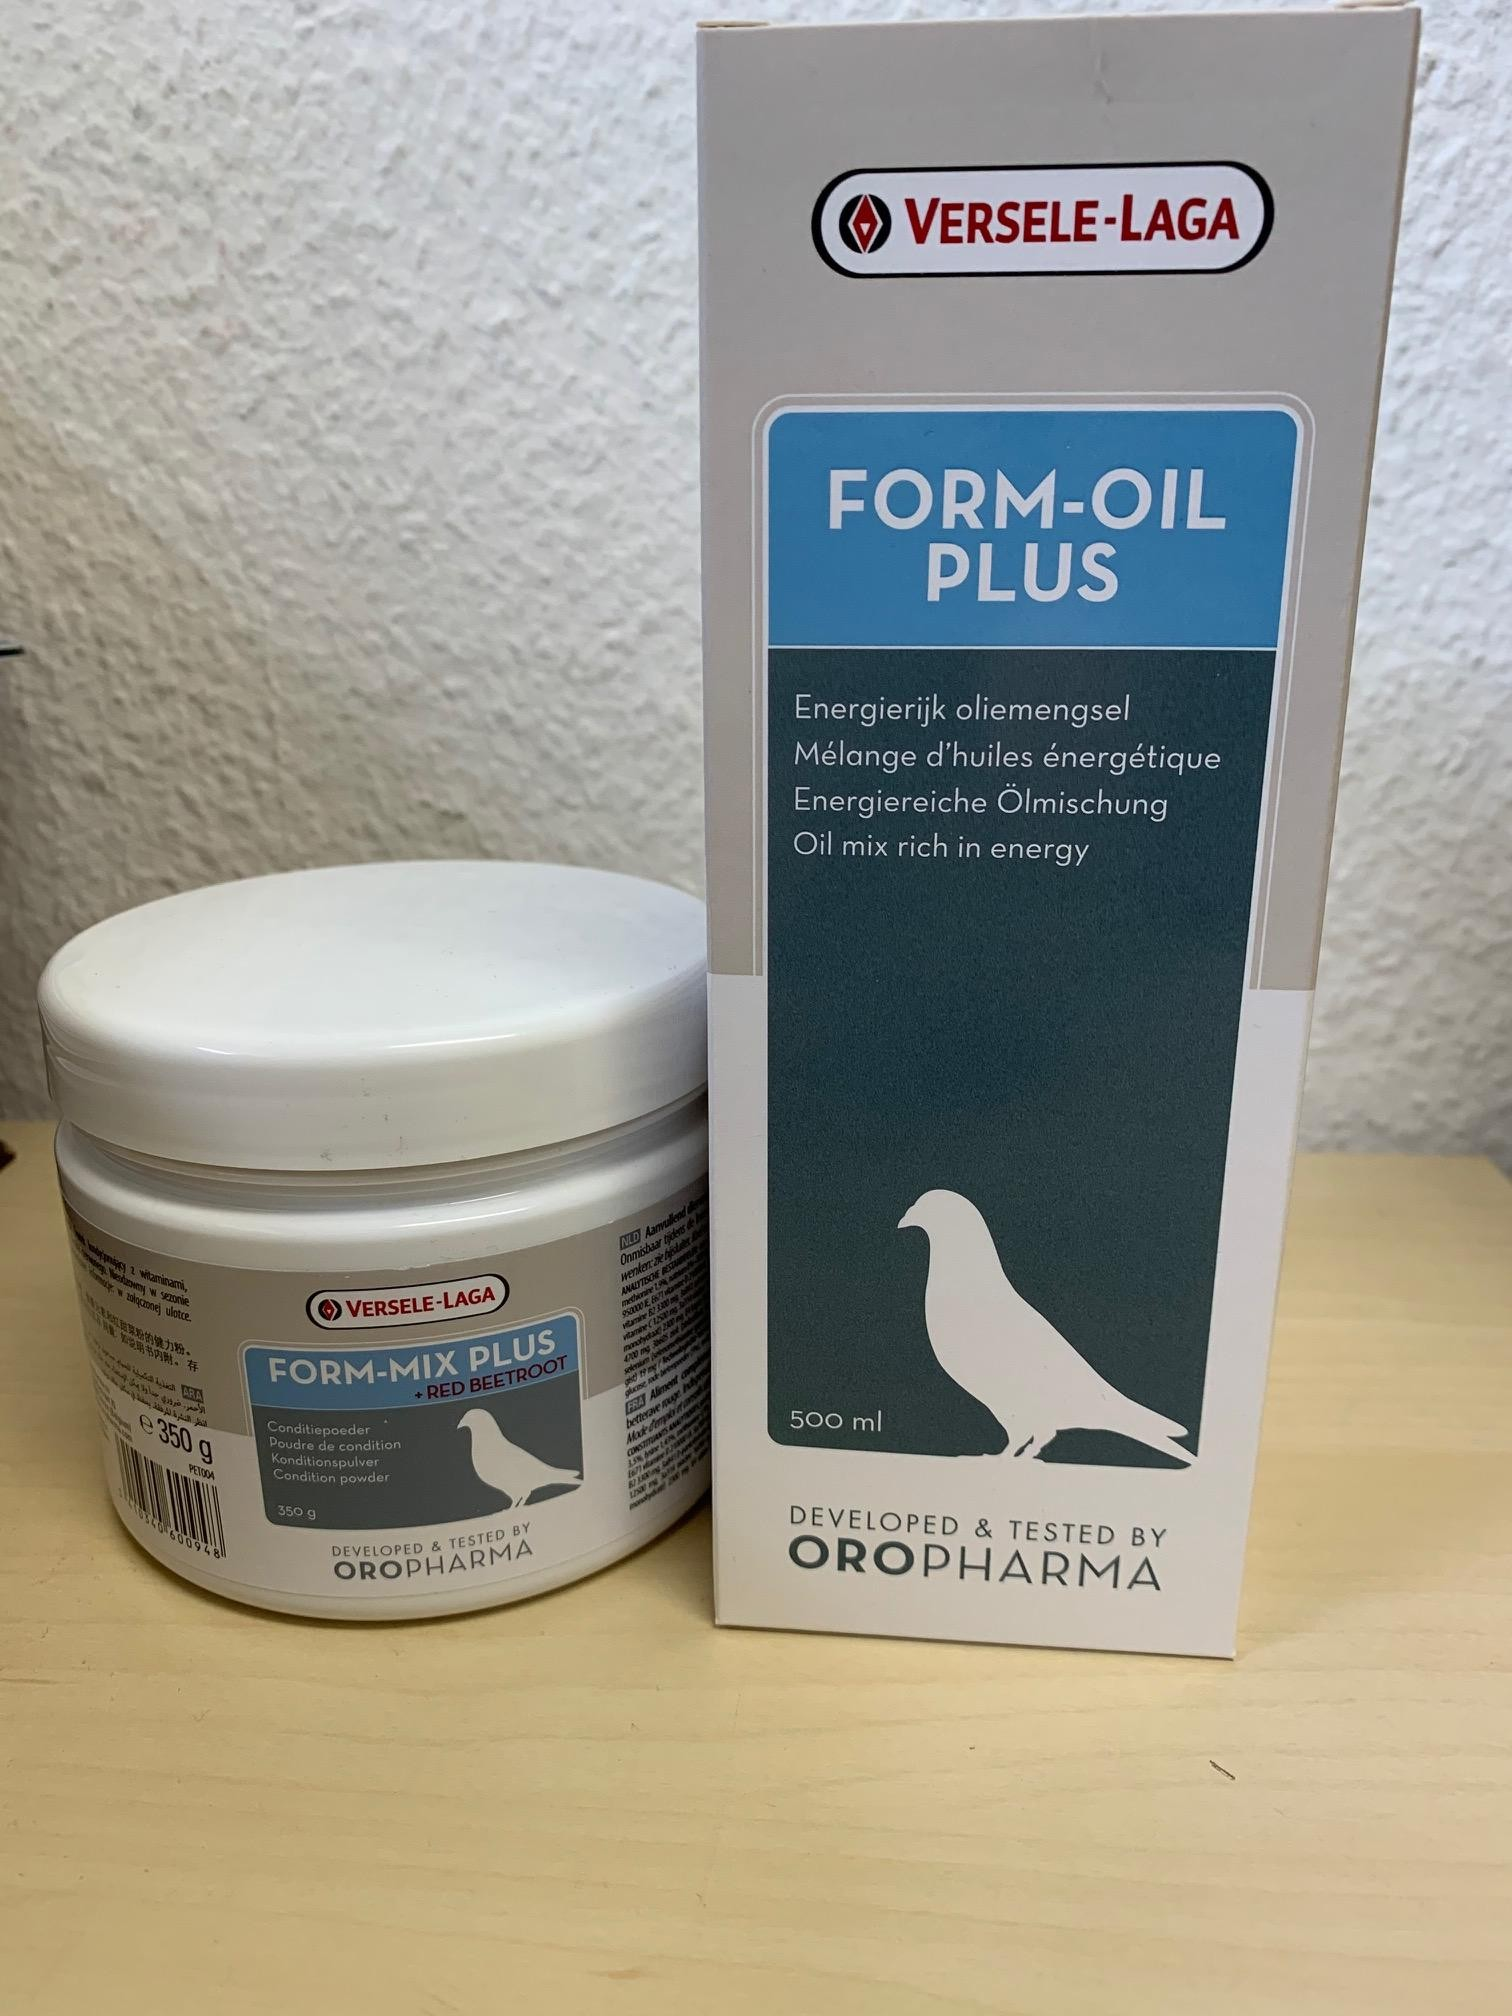 Angebot: 1x Oropharma Form Oil Plus + 1x Oropharma Form Mix Plus